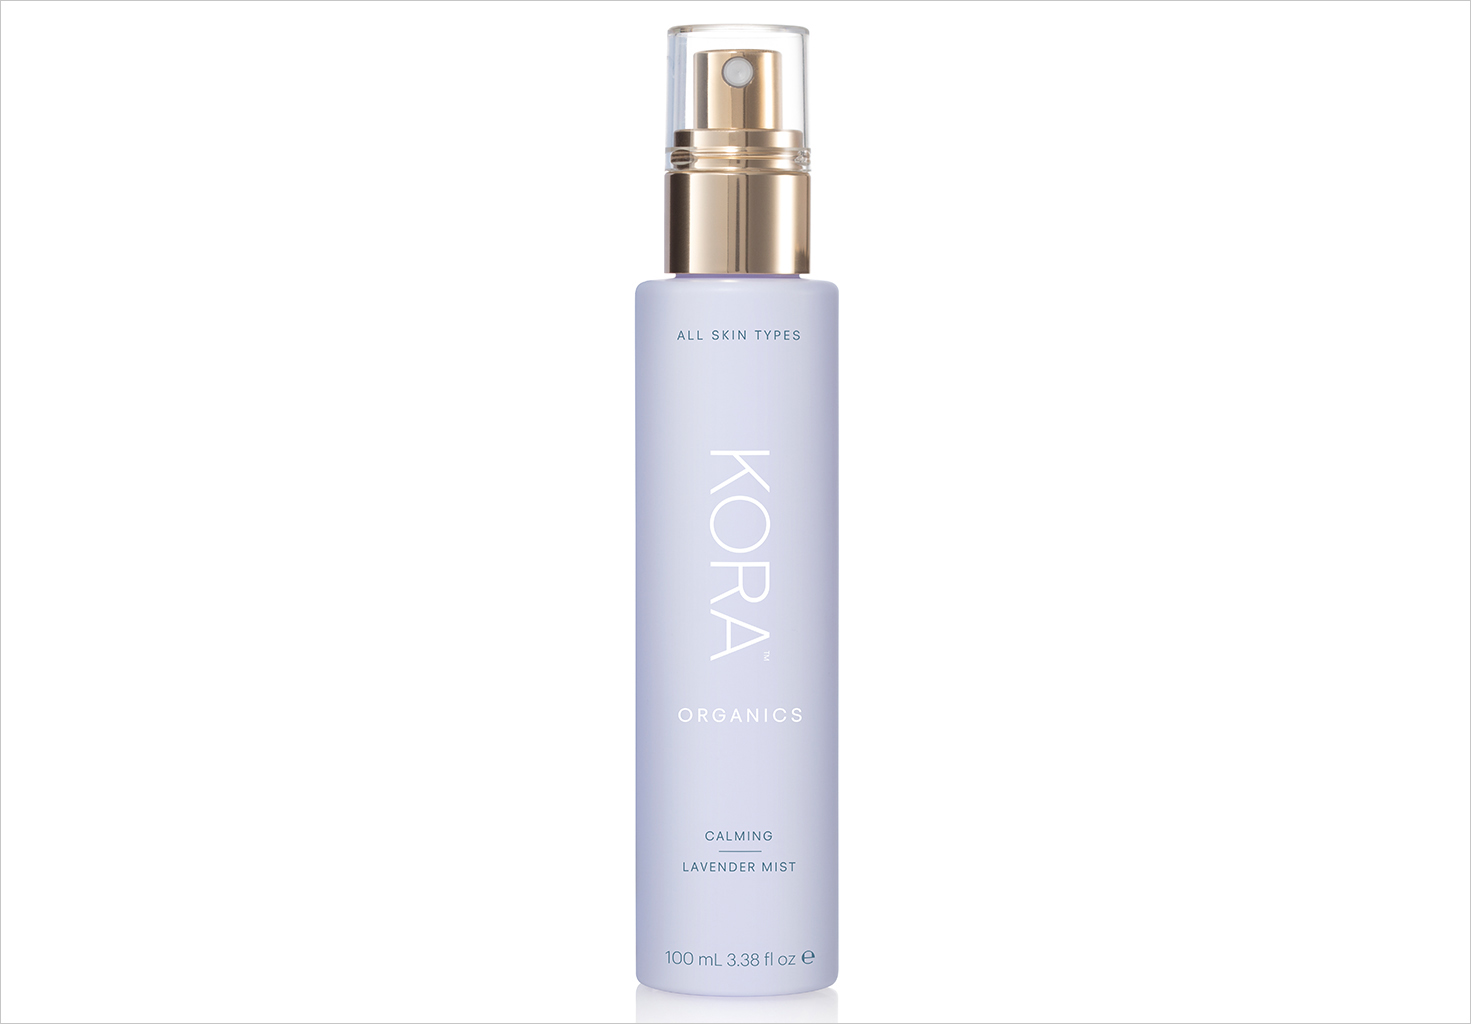 Kora Organics calming lavender mist bridal relaxation tips and products